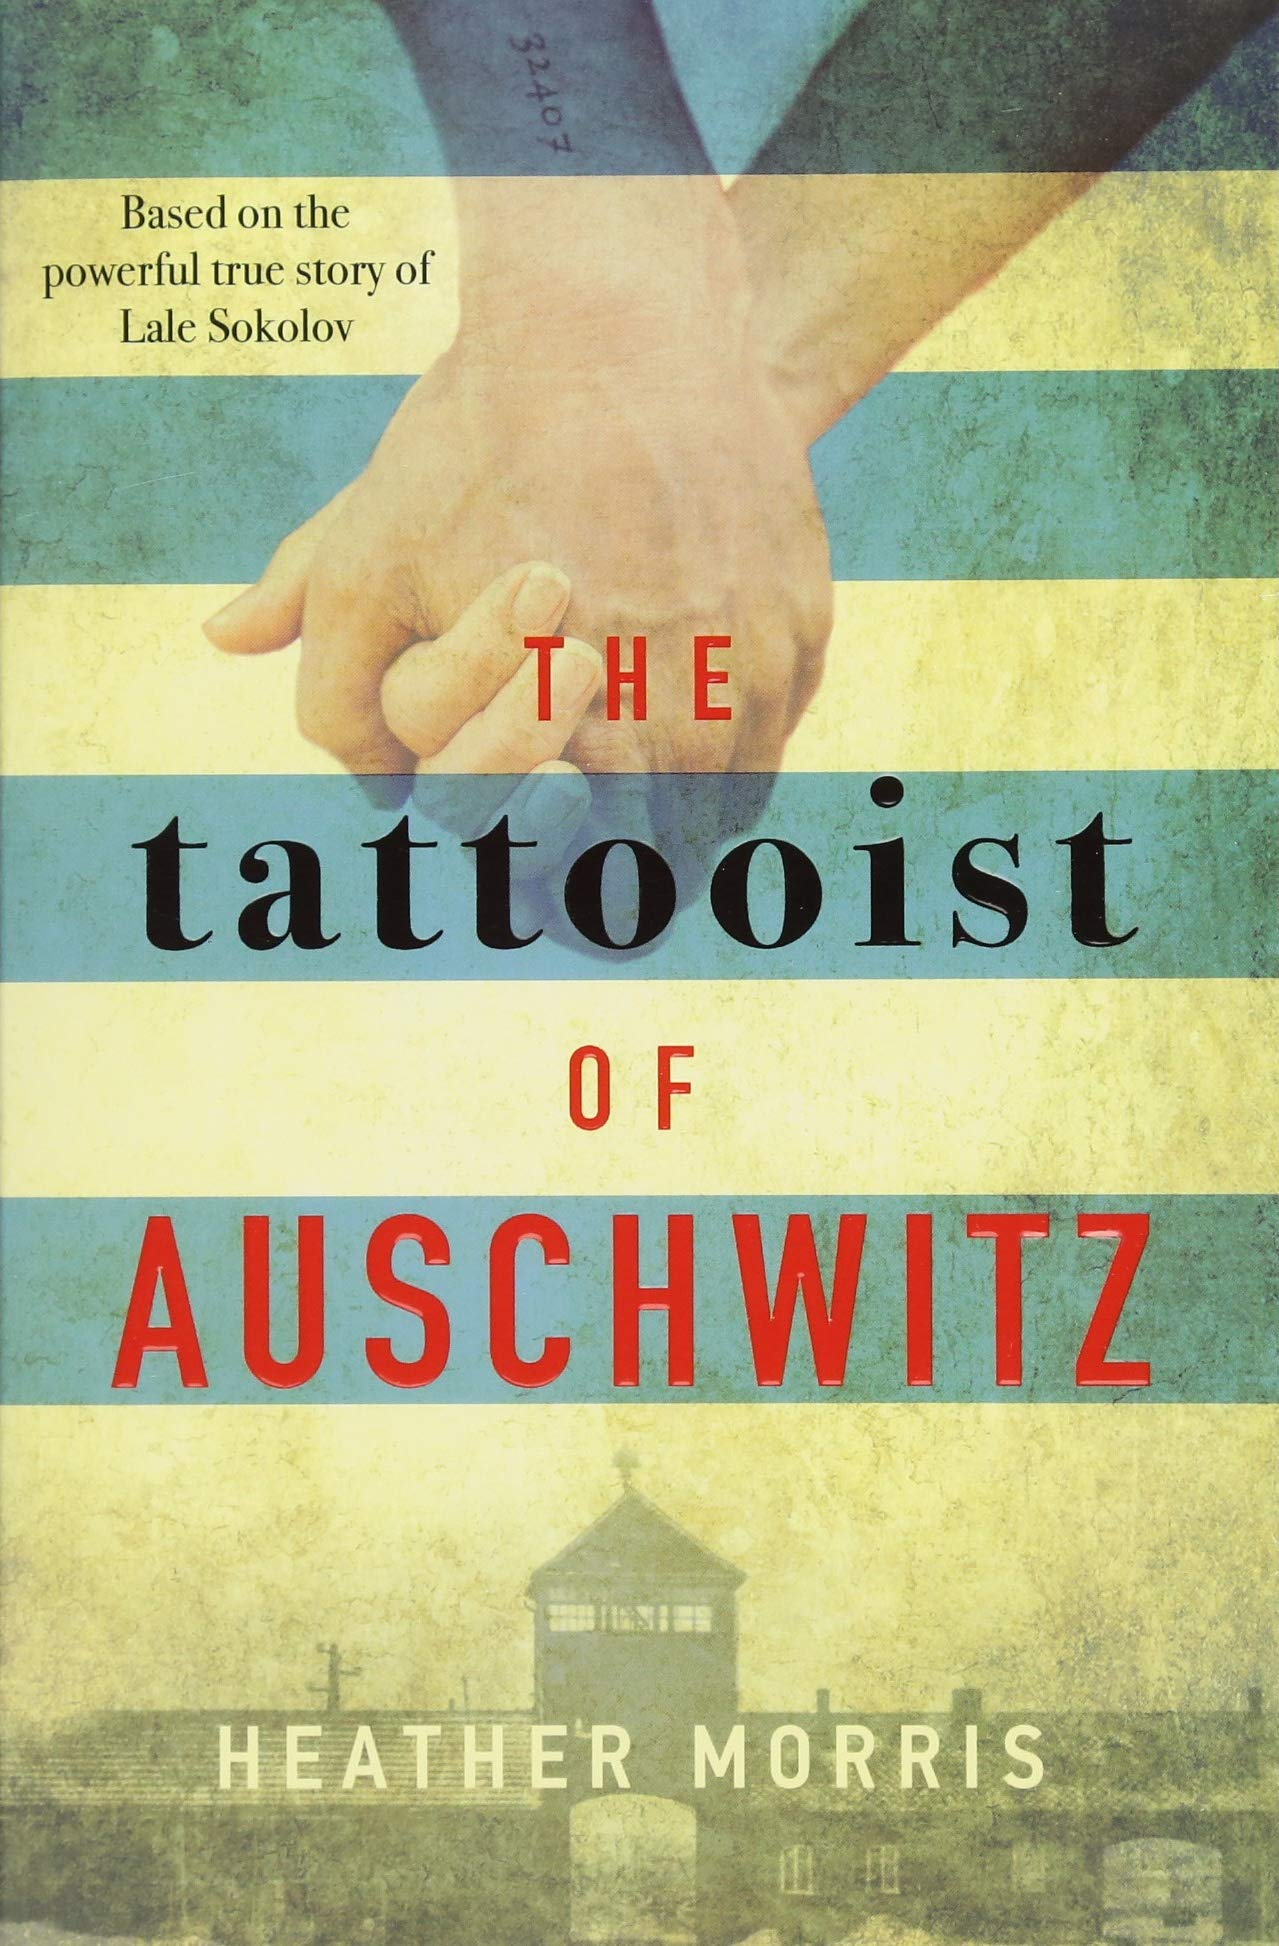 The Tattooist Of Auschwitz: Amazon.es: Morris Heather: Libros en idiomas extranjeros